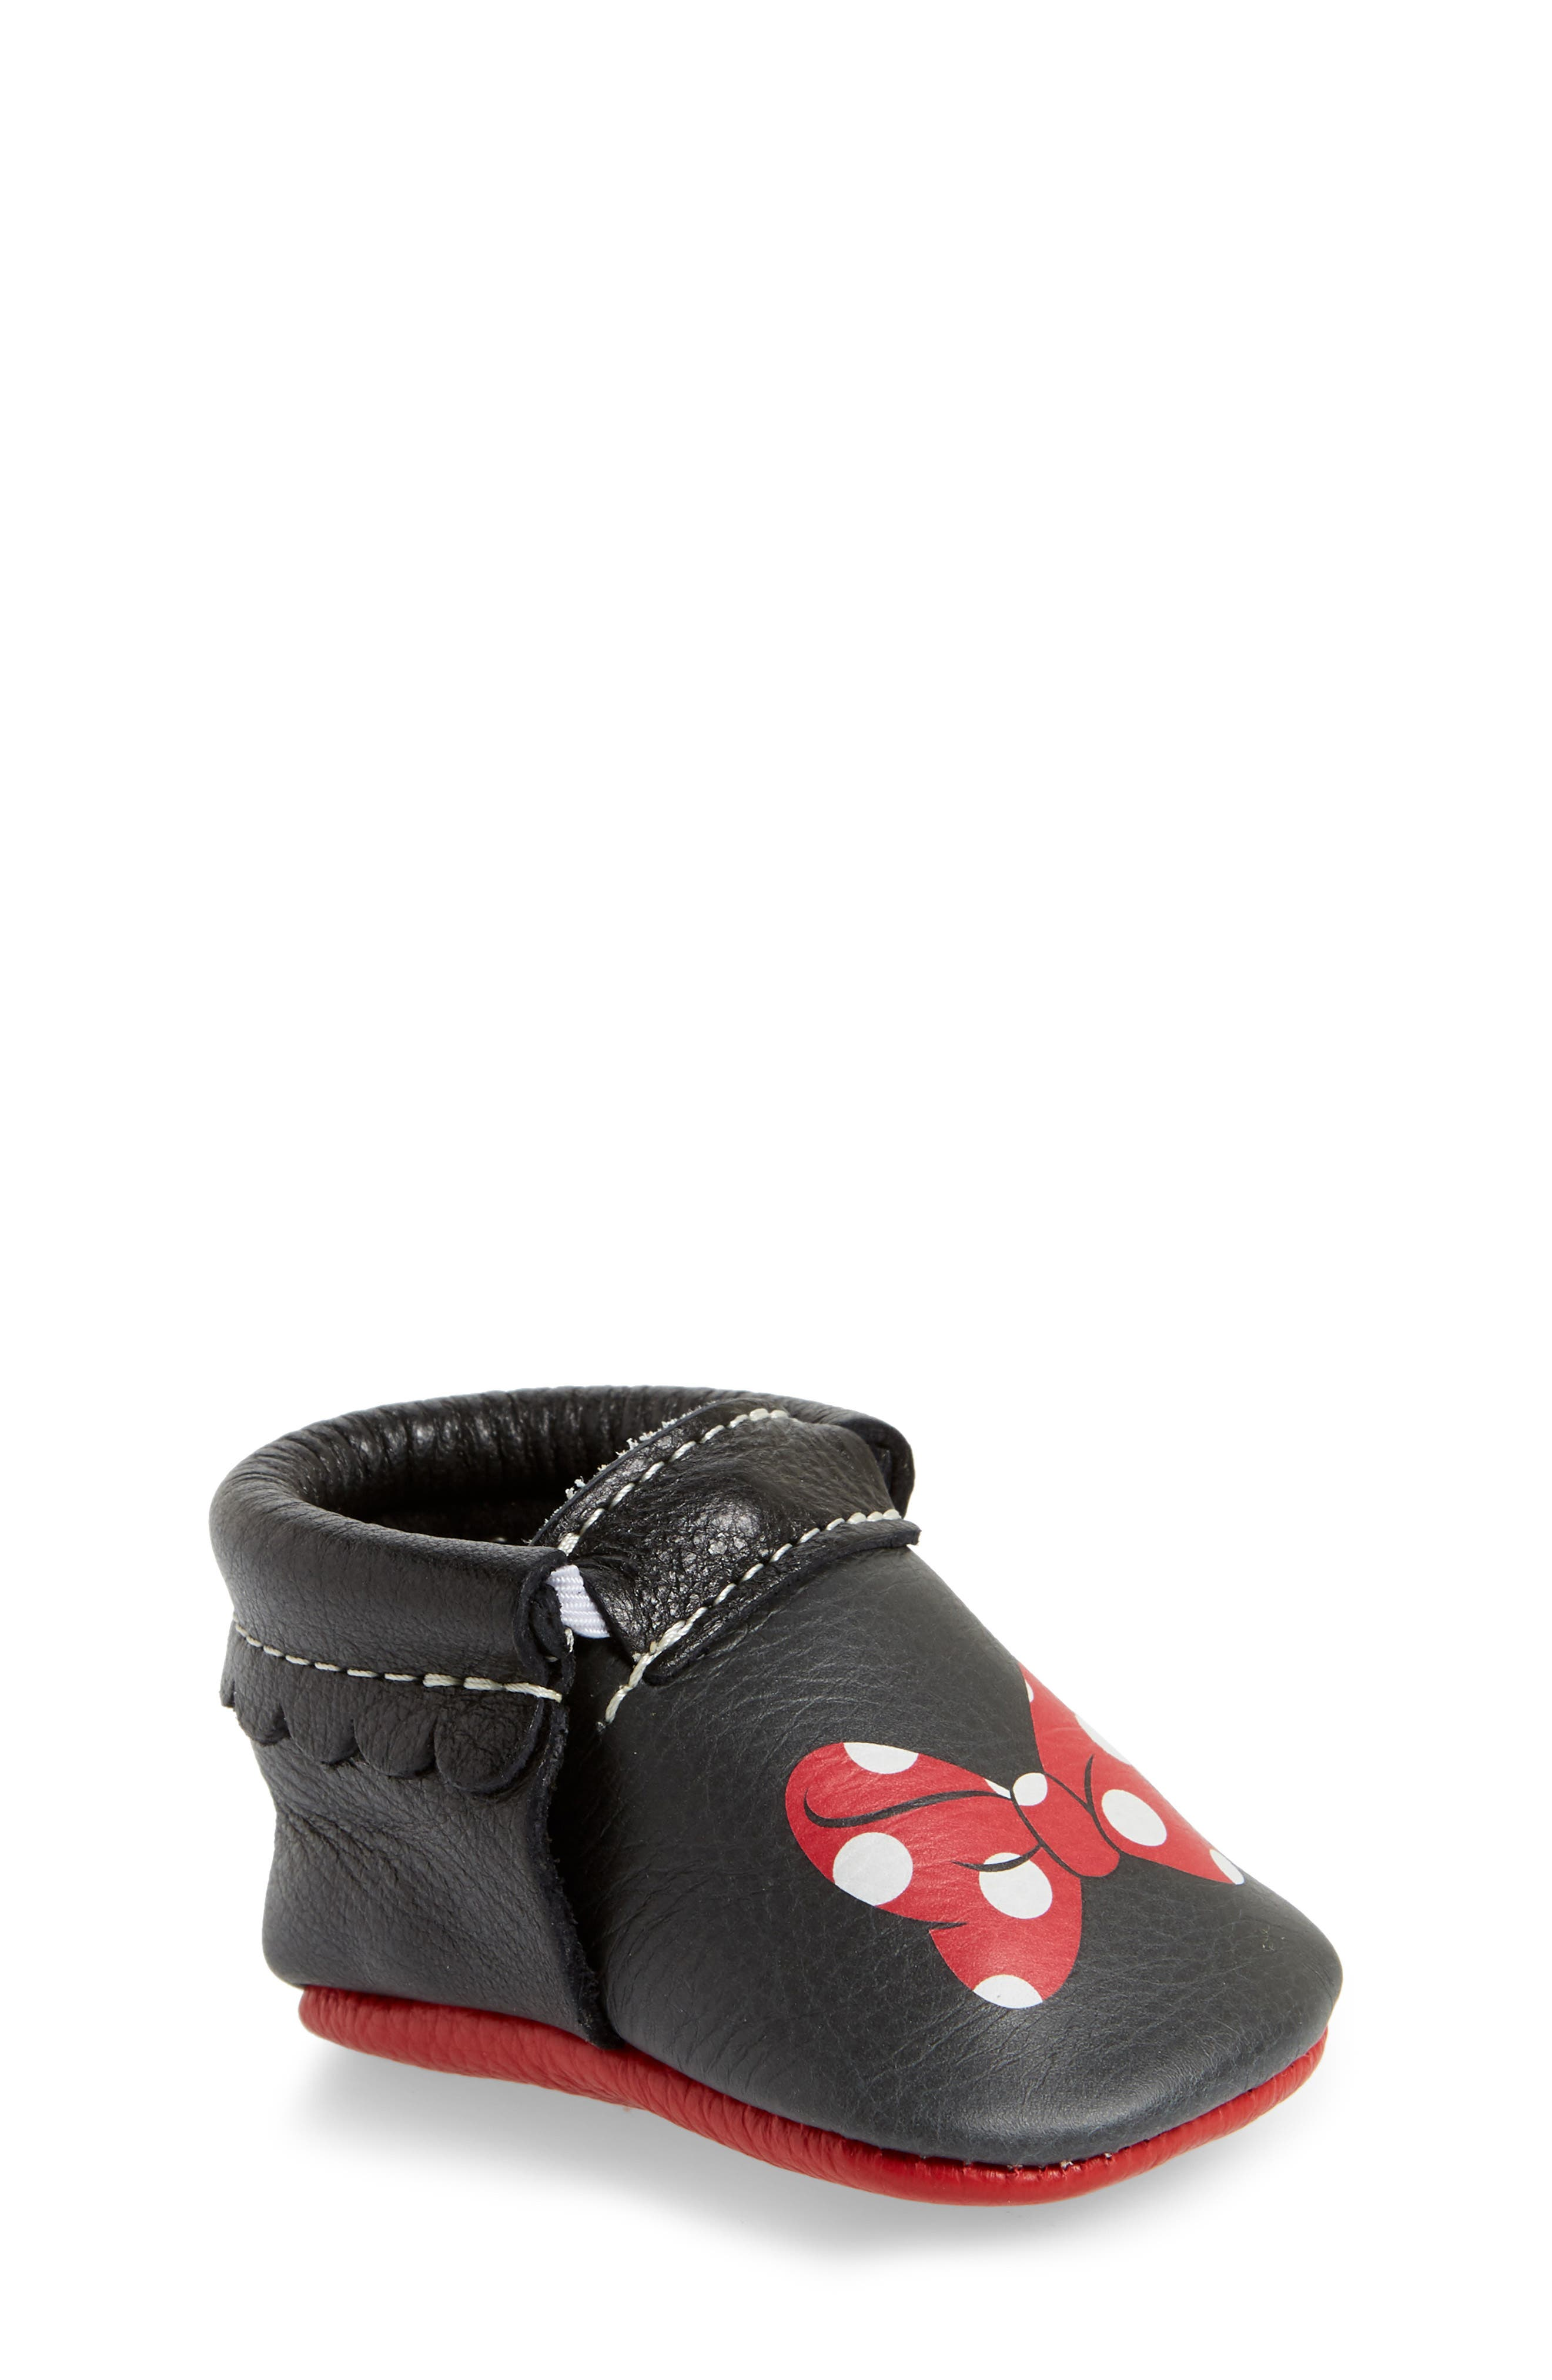 x Disney<sup>®</sup> Baby Minnie Mouse Crib Moccasin,                         Main,                         color, Black Leather